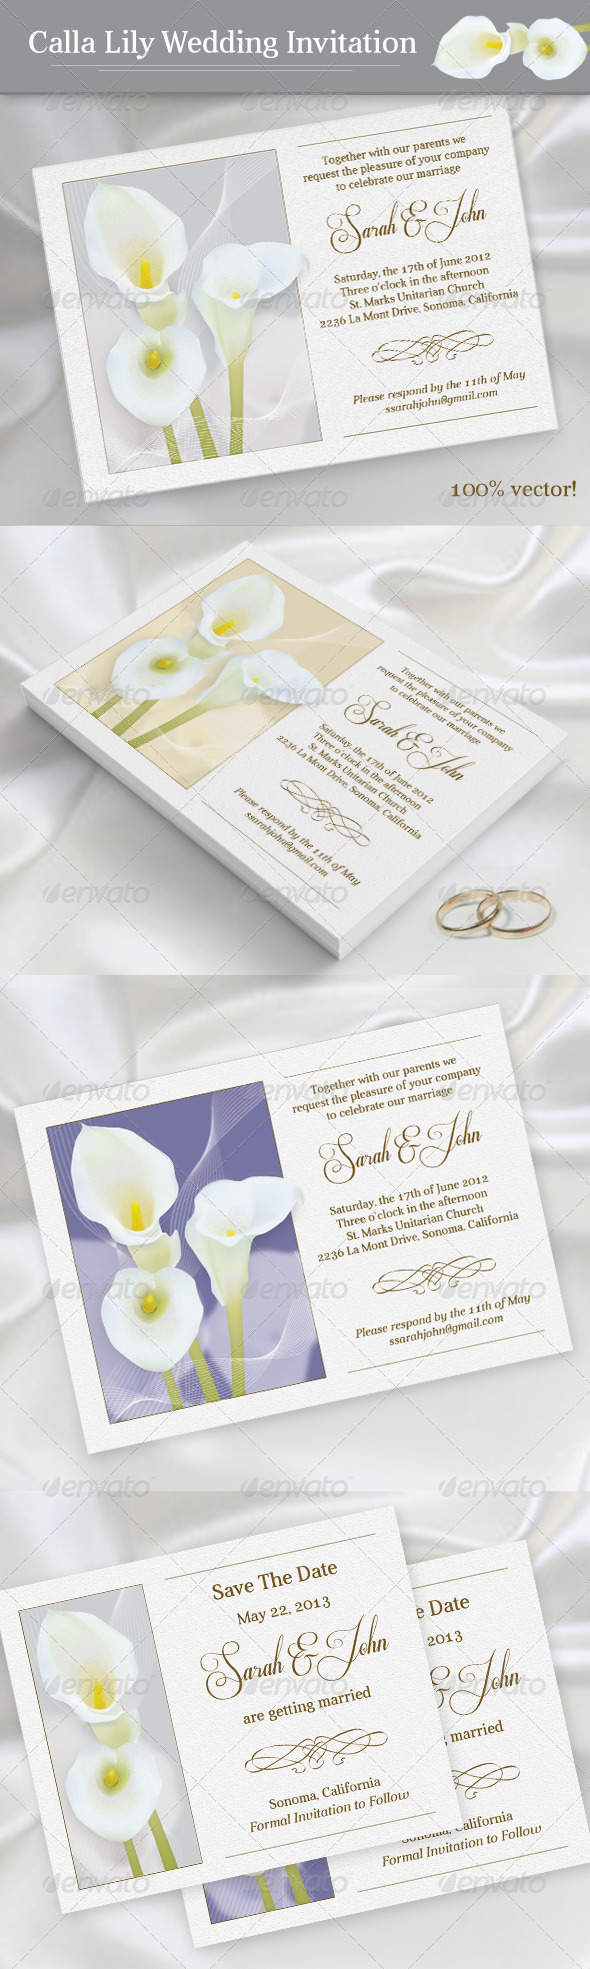 GraphicRiver Calla Lily Wedding Invitation 4337483